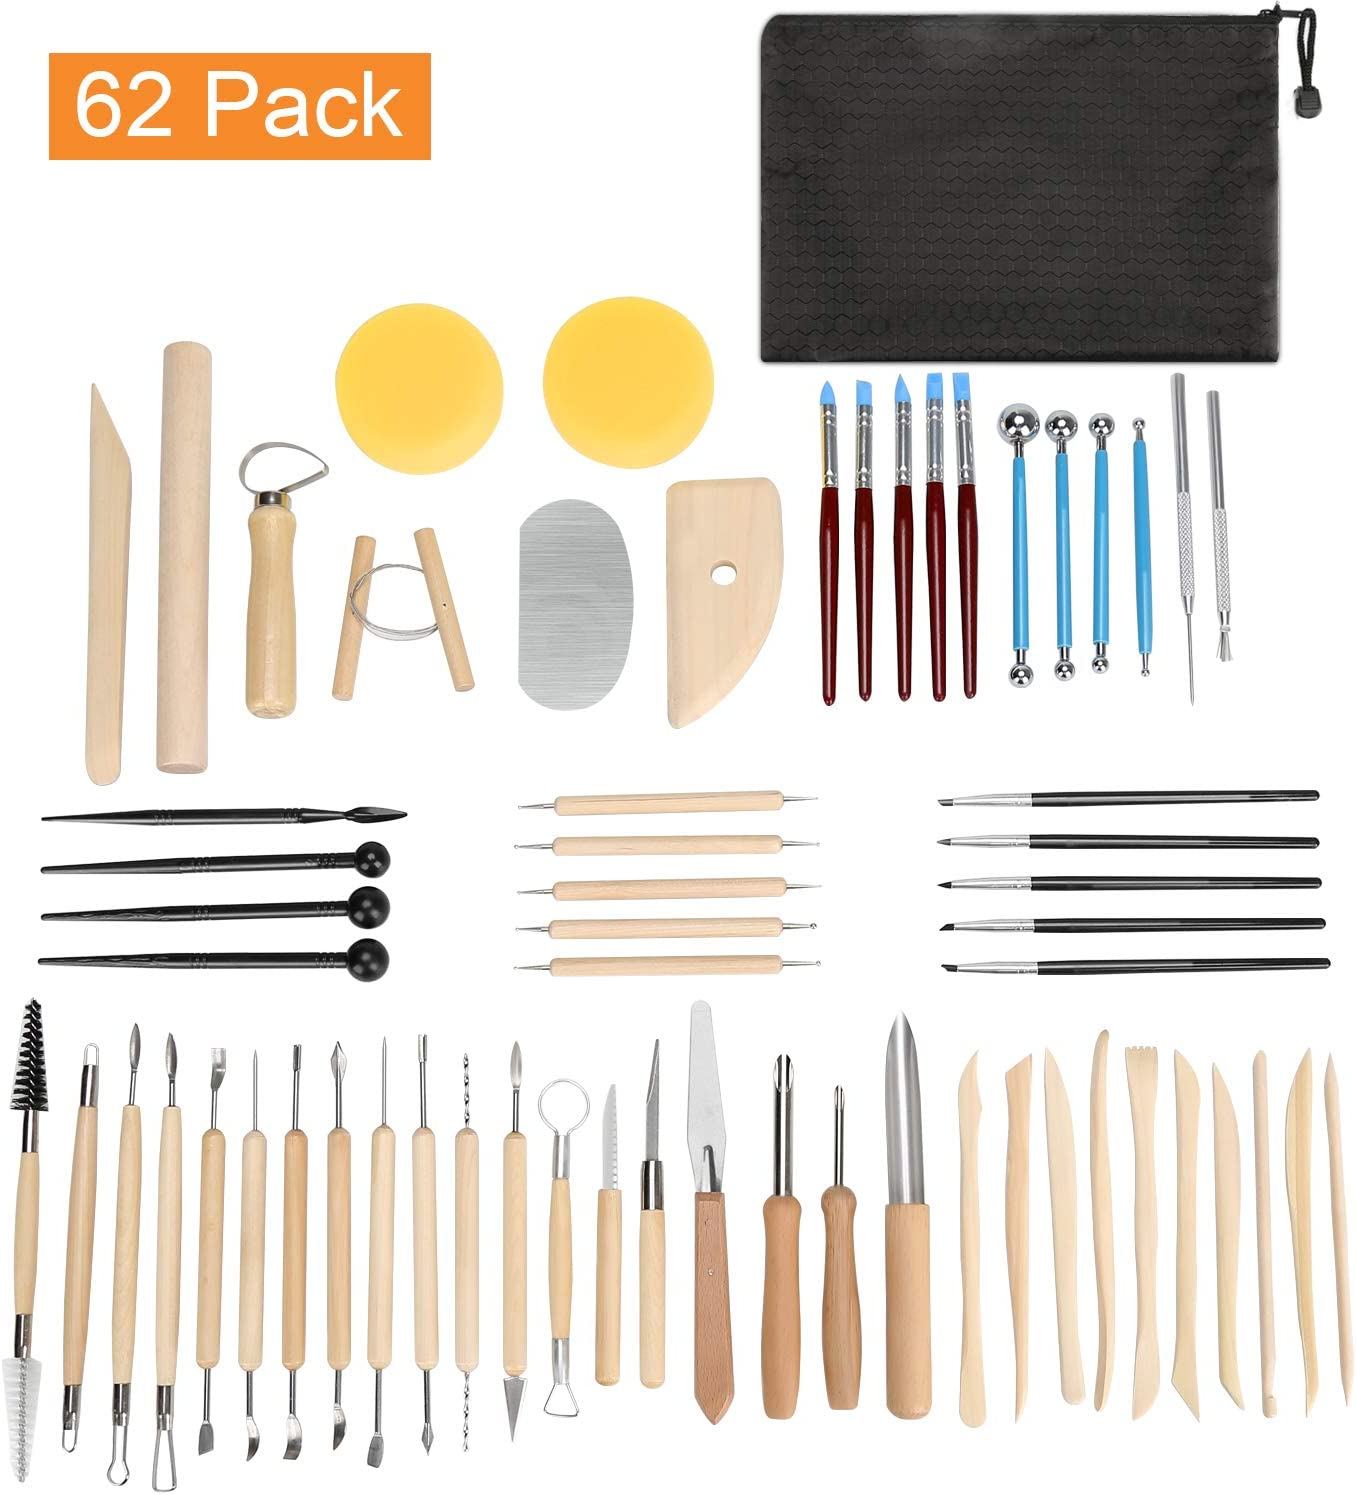 Blisstime Set of 62 Clay Tools,Pottery Sculpting Tool and Supplies, Wooden Handle and Metal Head Pottery Carving Tool Kit